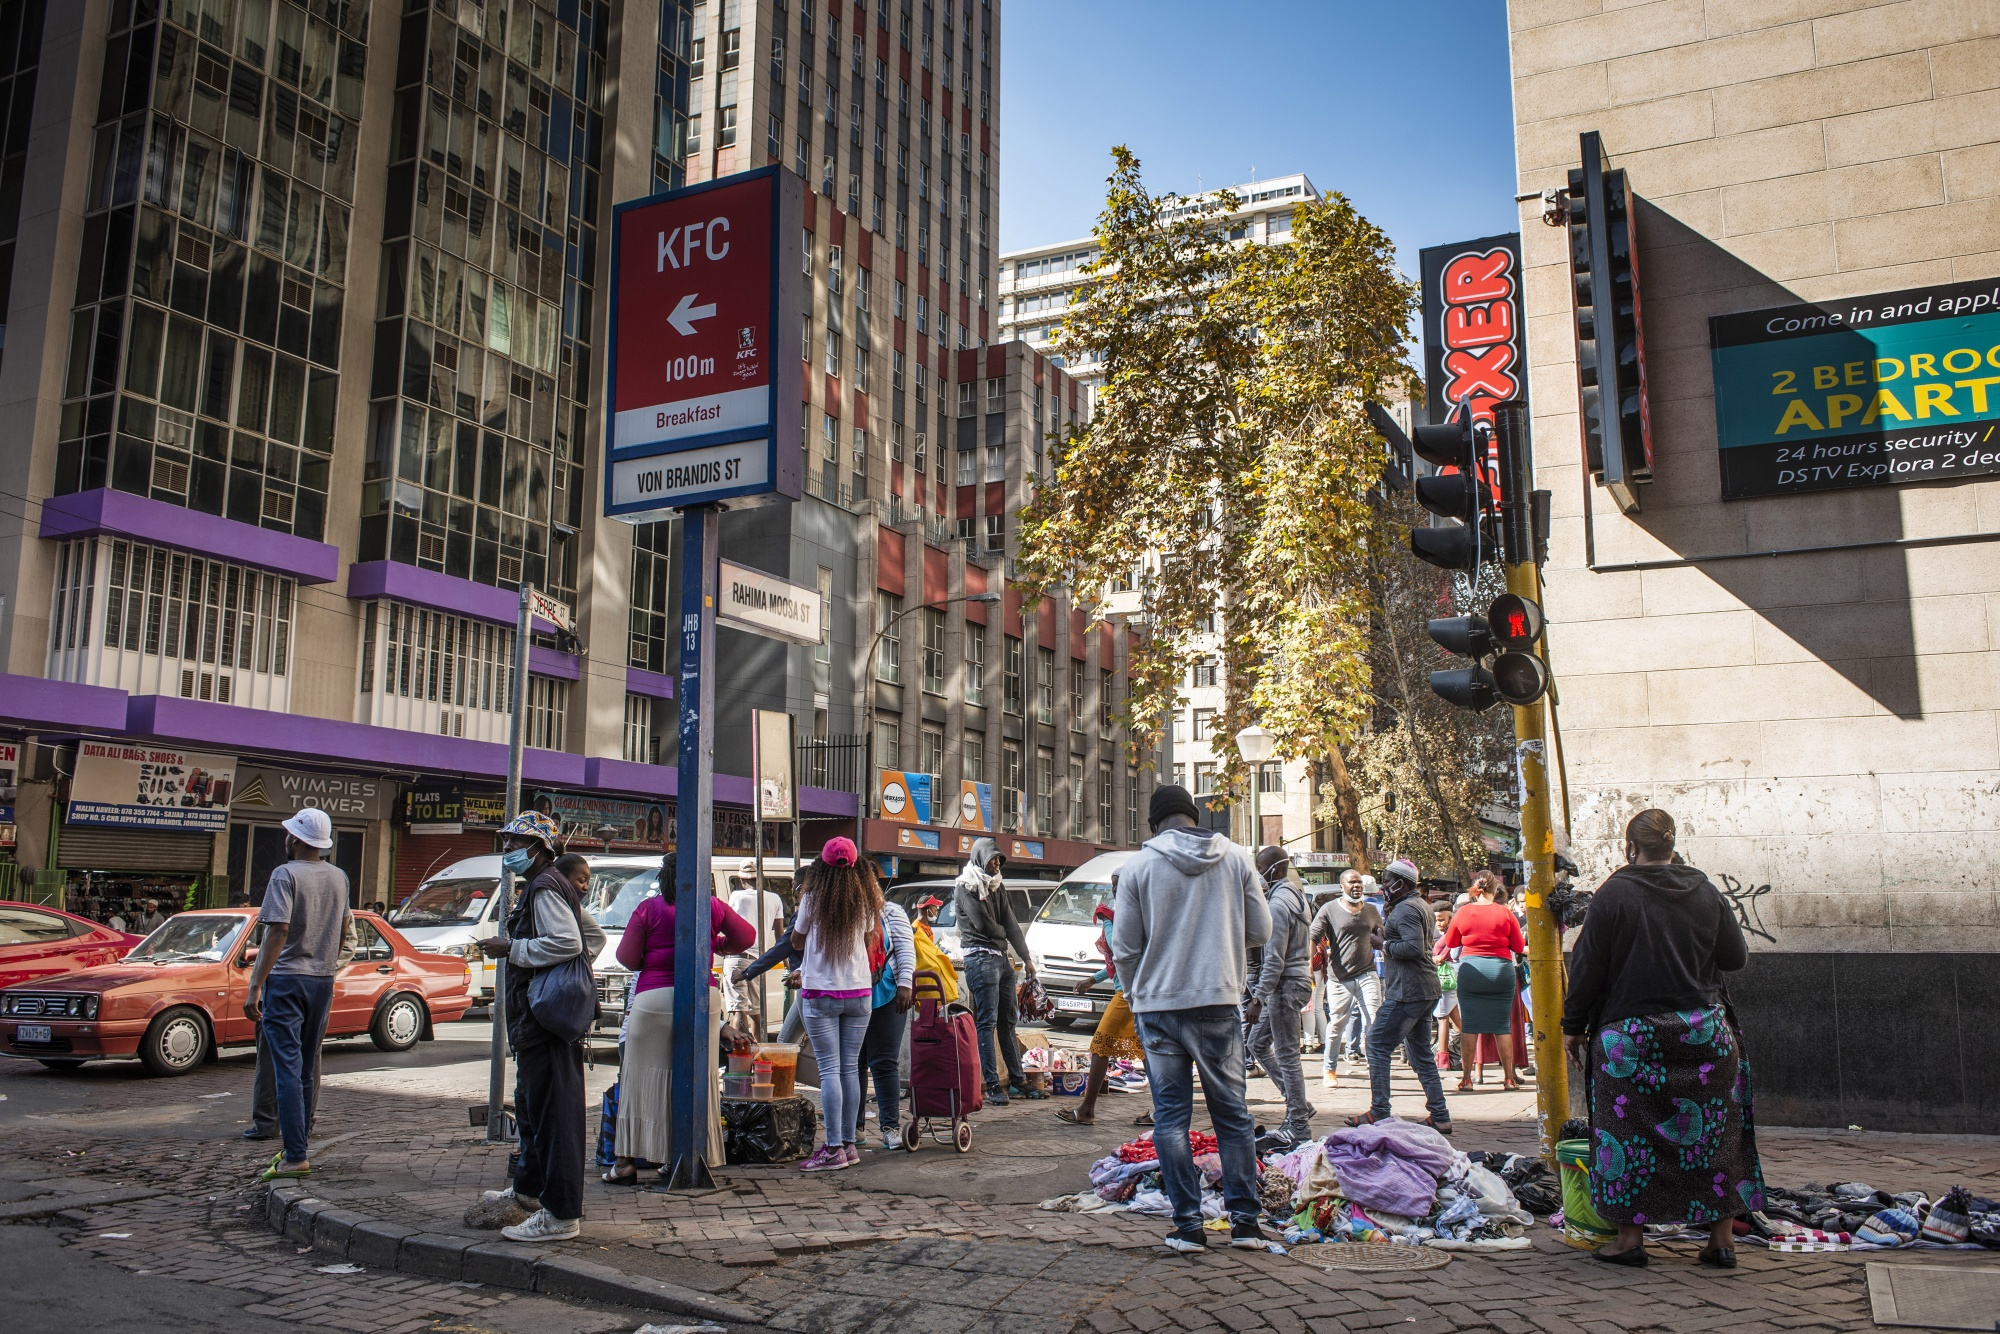 People gather on a street corner in the Central Business District (CBD) of Johannesburg.